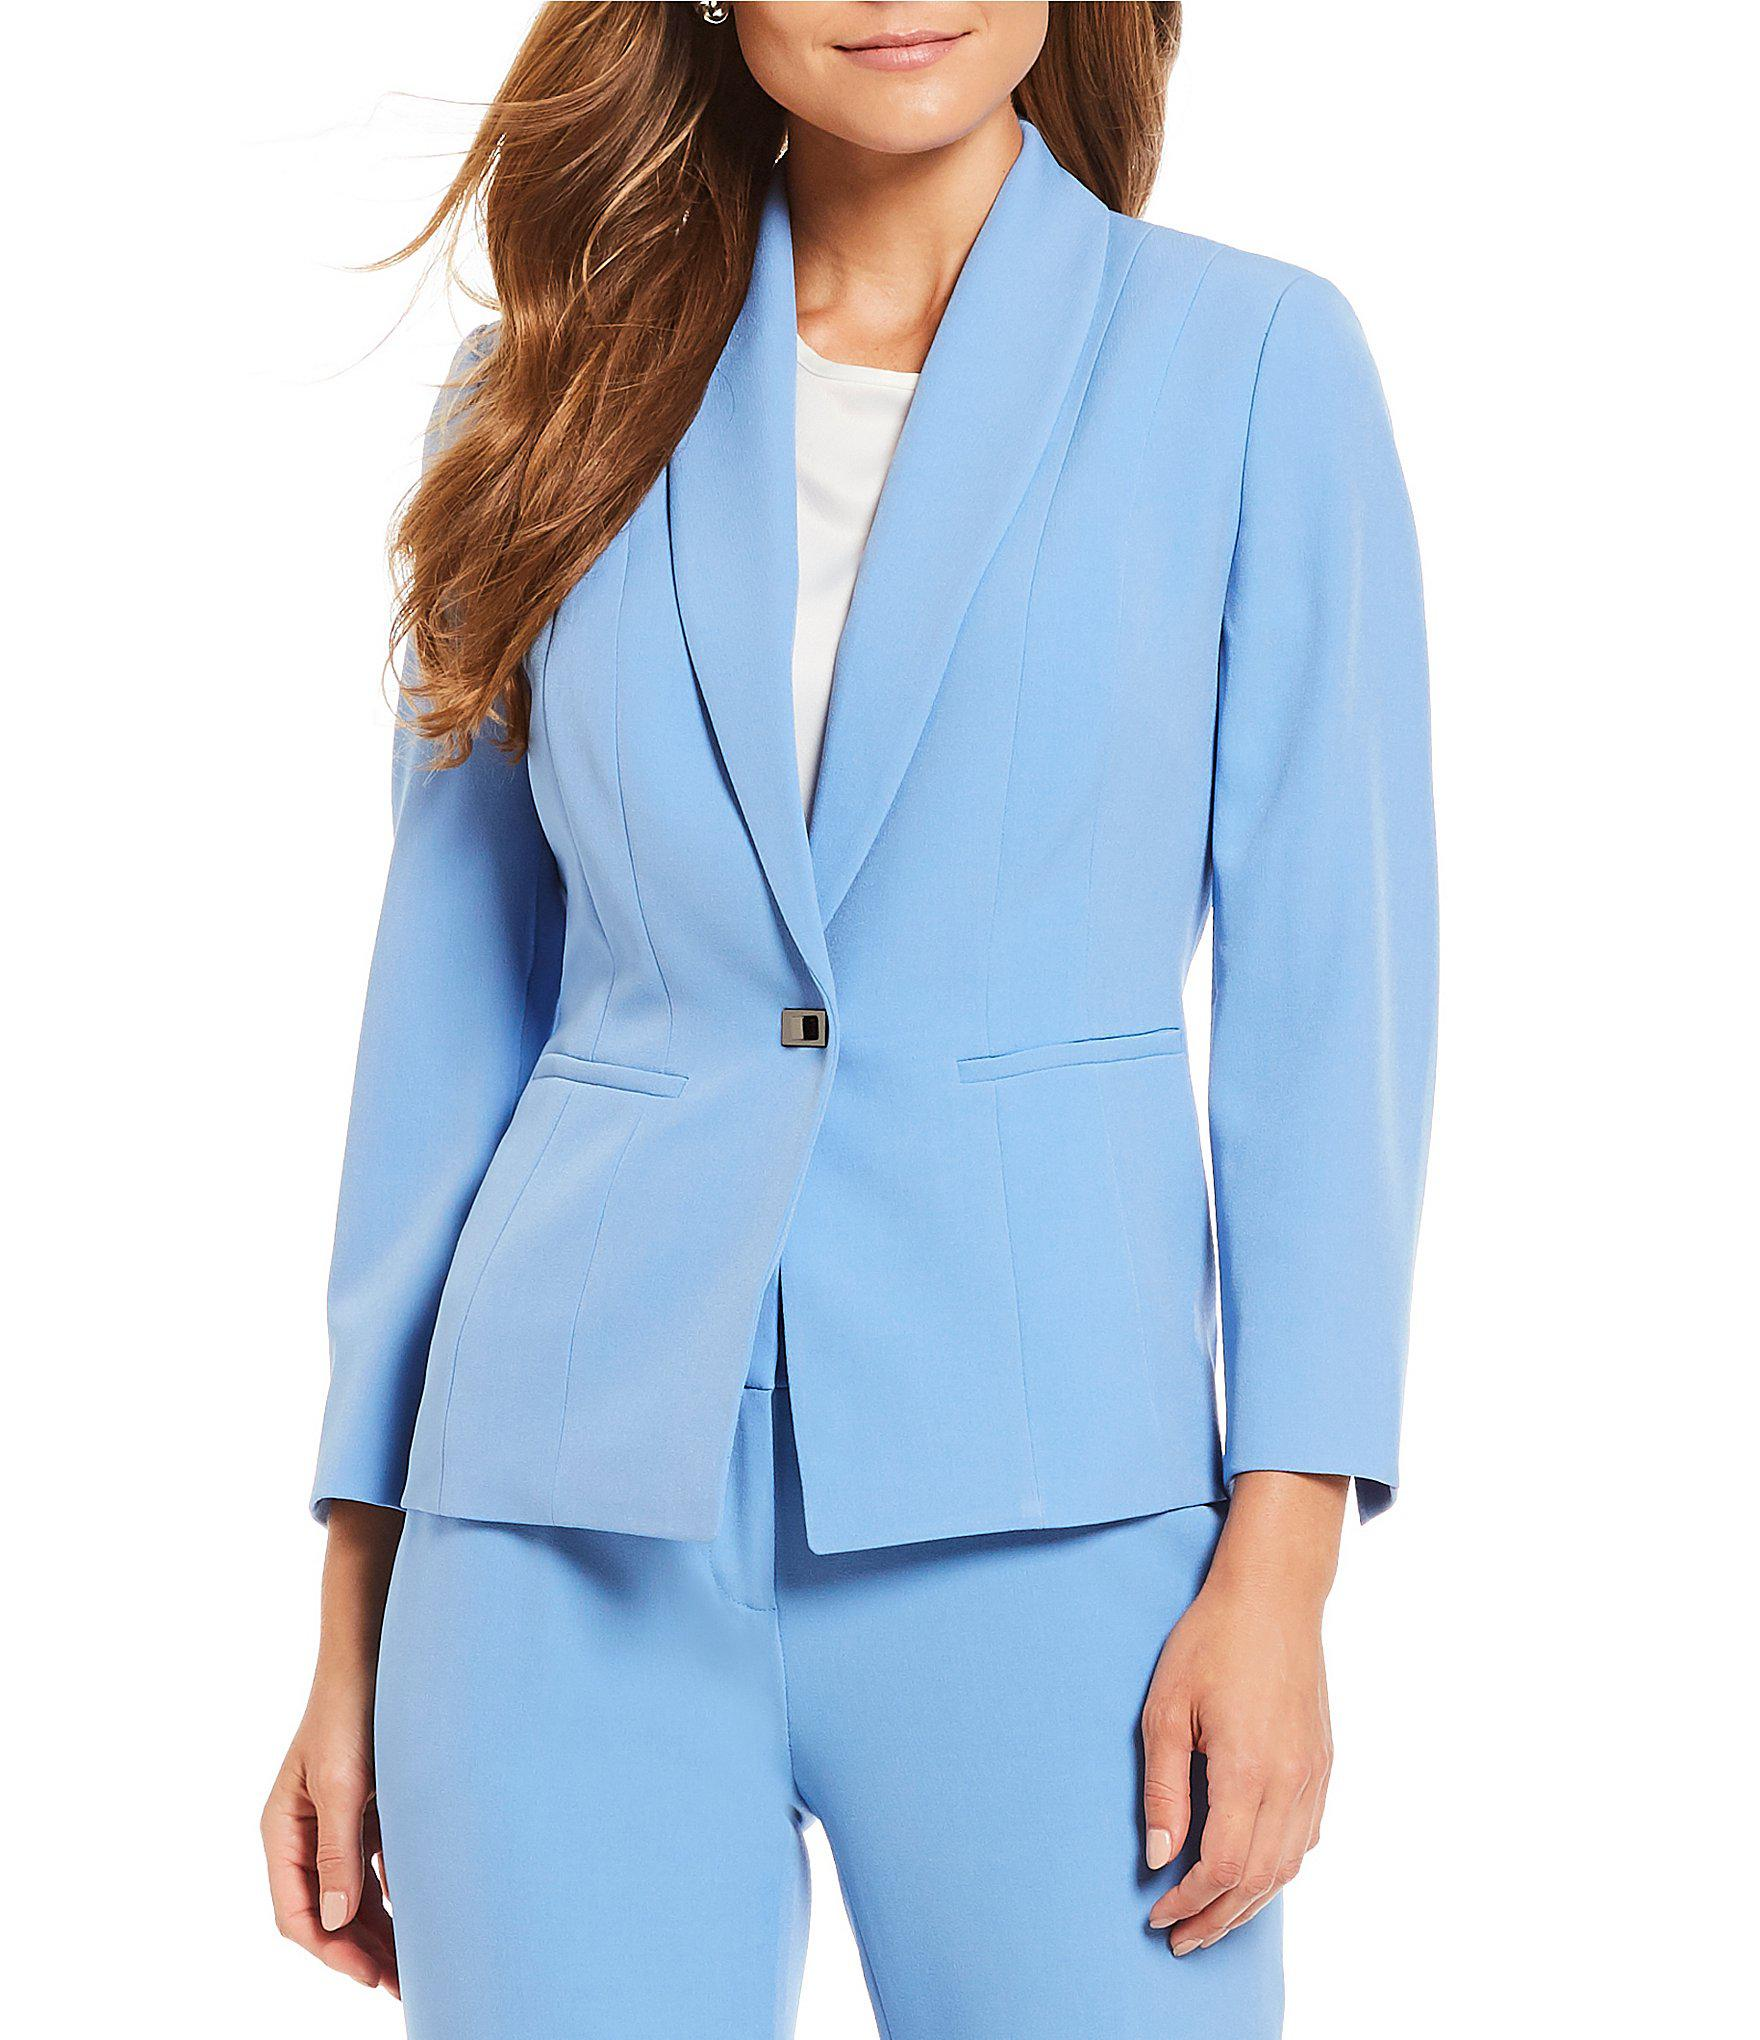 c43544deef9 Lyst - Kasper Petite Size Stretch Crepe Single Button Jacket in Blue